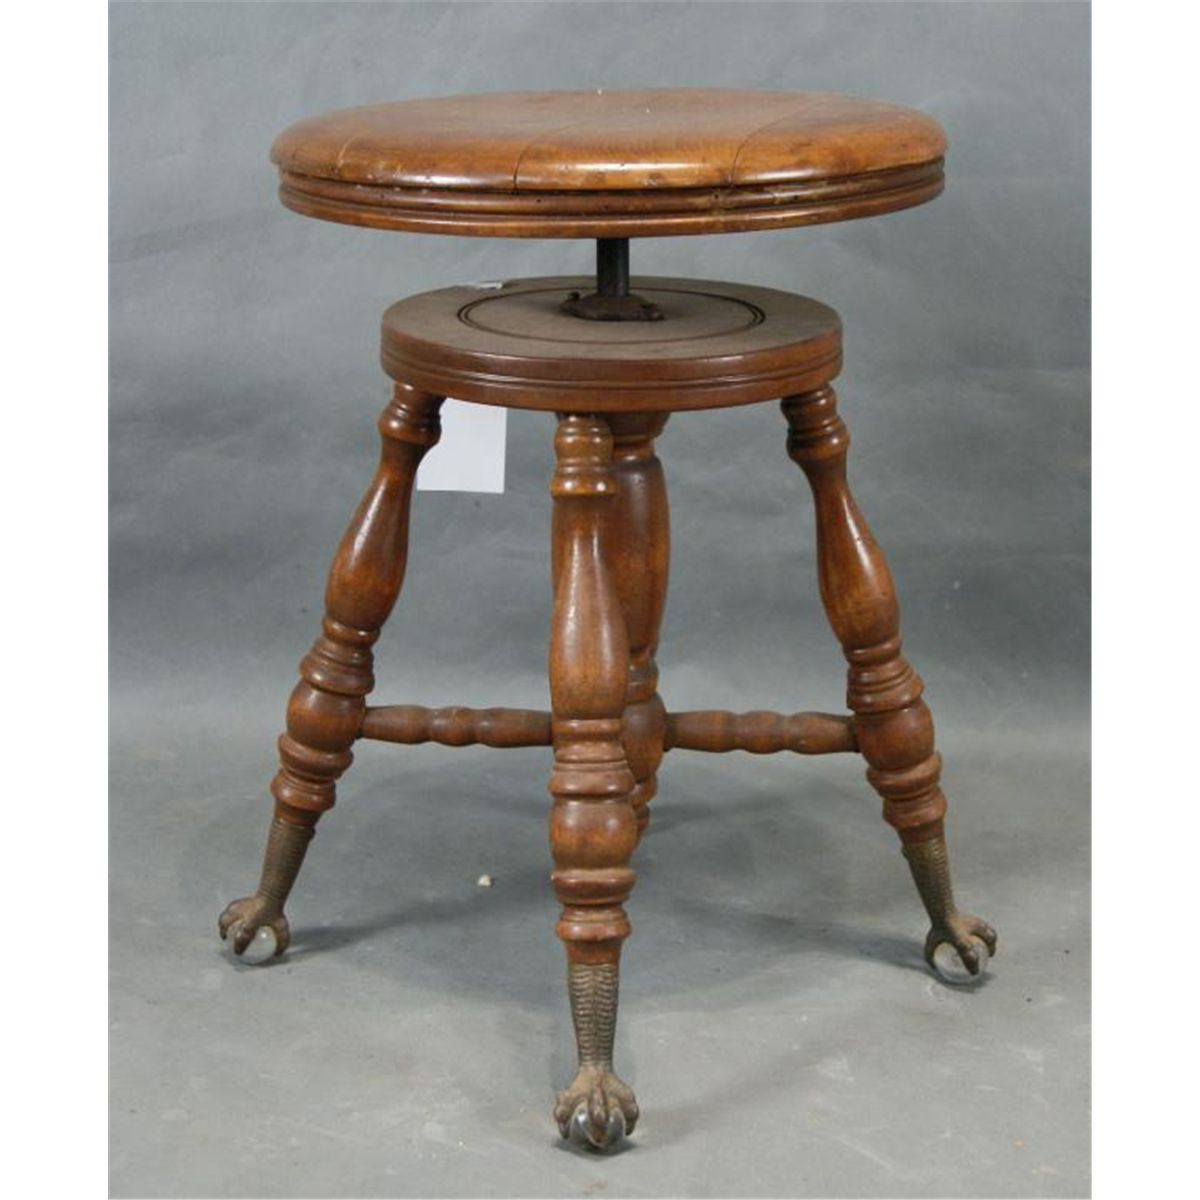 Furniture 1800-1899 Stool With Claw Feet